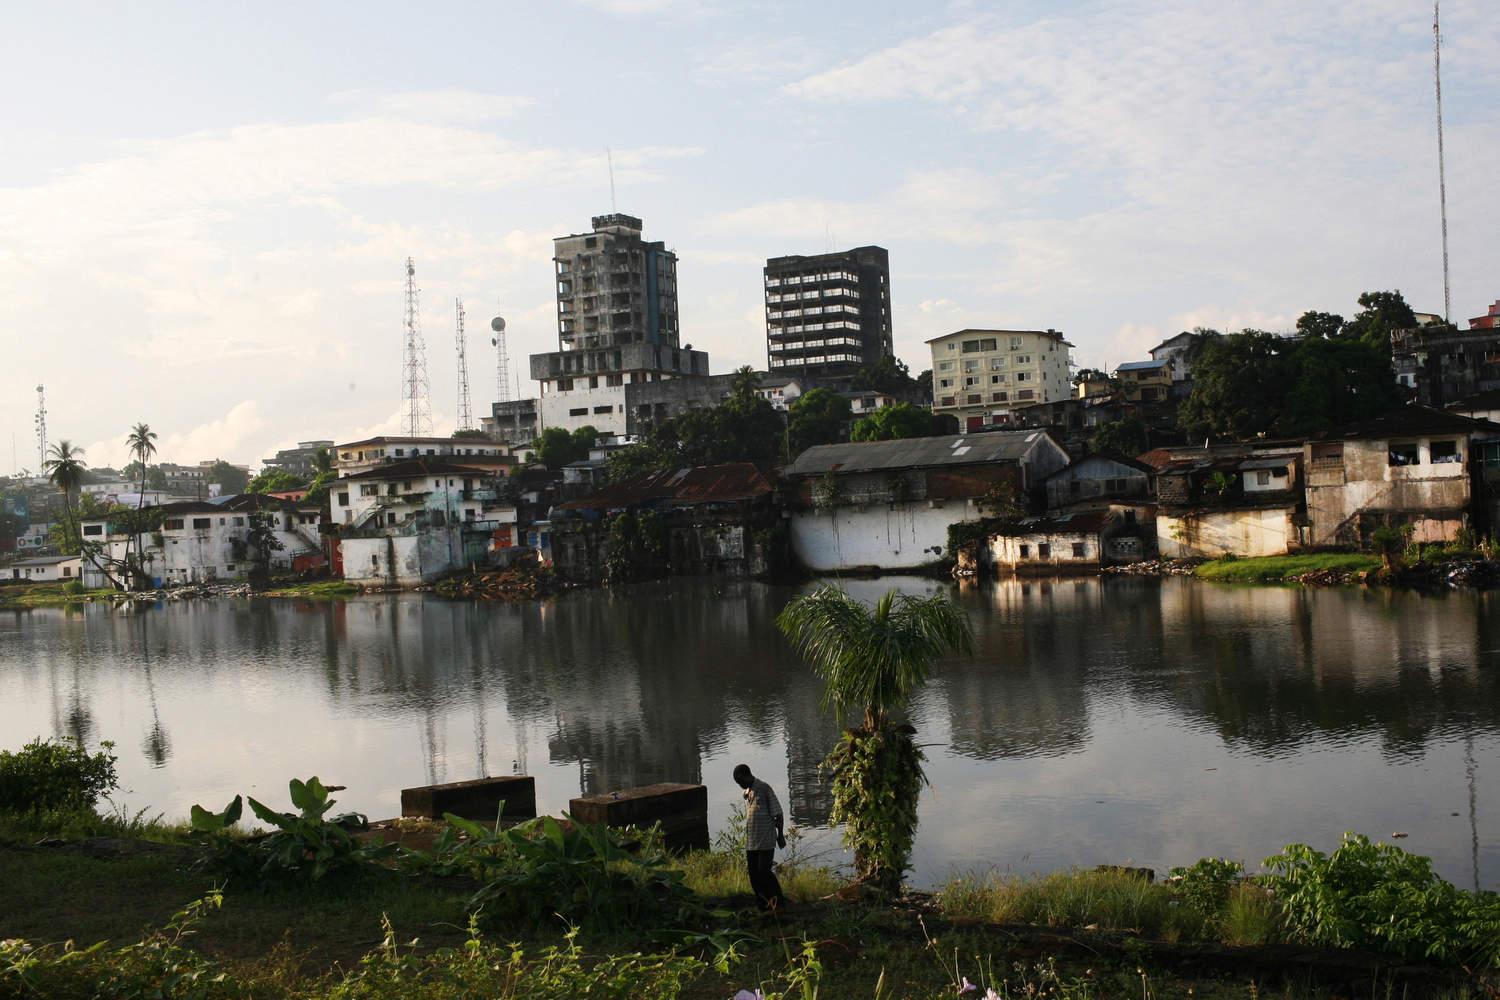 Downtown Monrovia as seen from Provident Island, the thin strip of land jutting into the Atlantic Ocean where the freed slaves first landed in Liberia in the 1820s.